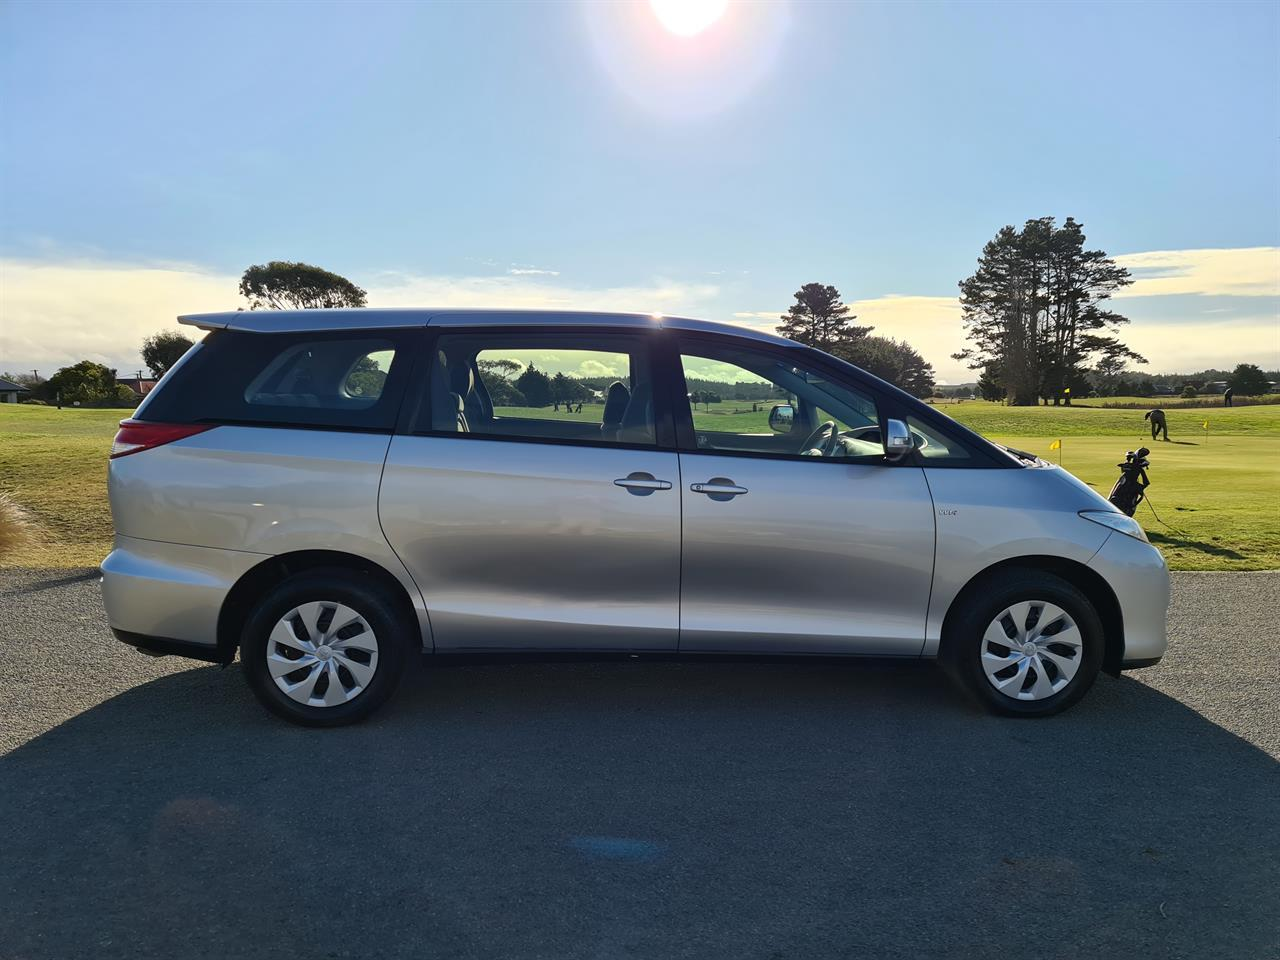 image-6, 2014 Toyota Previa 2.4P NPV CVT at Christchurch